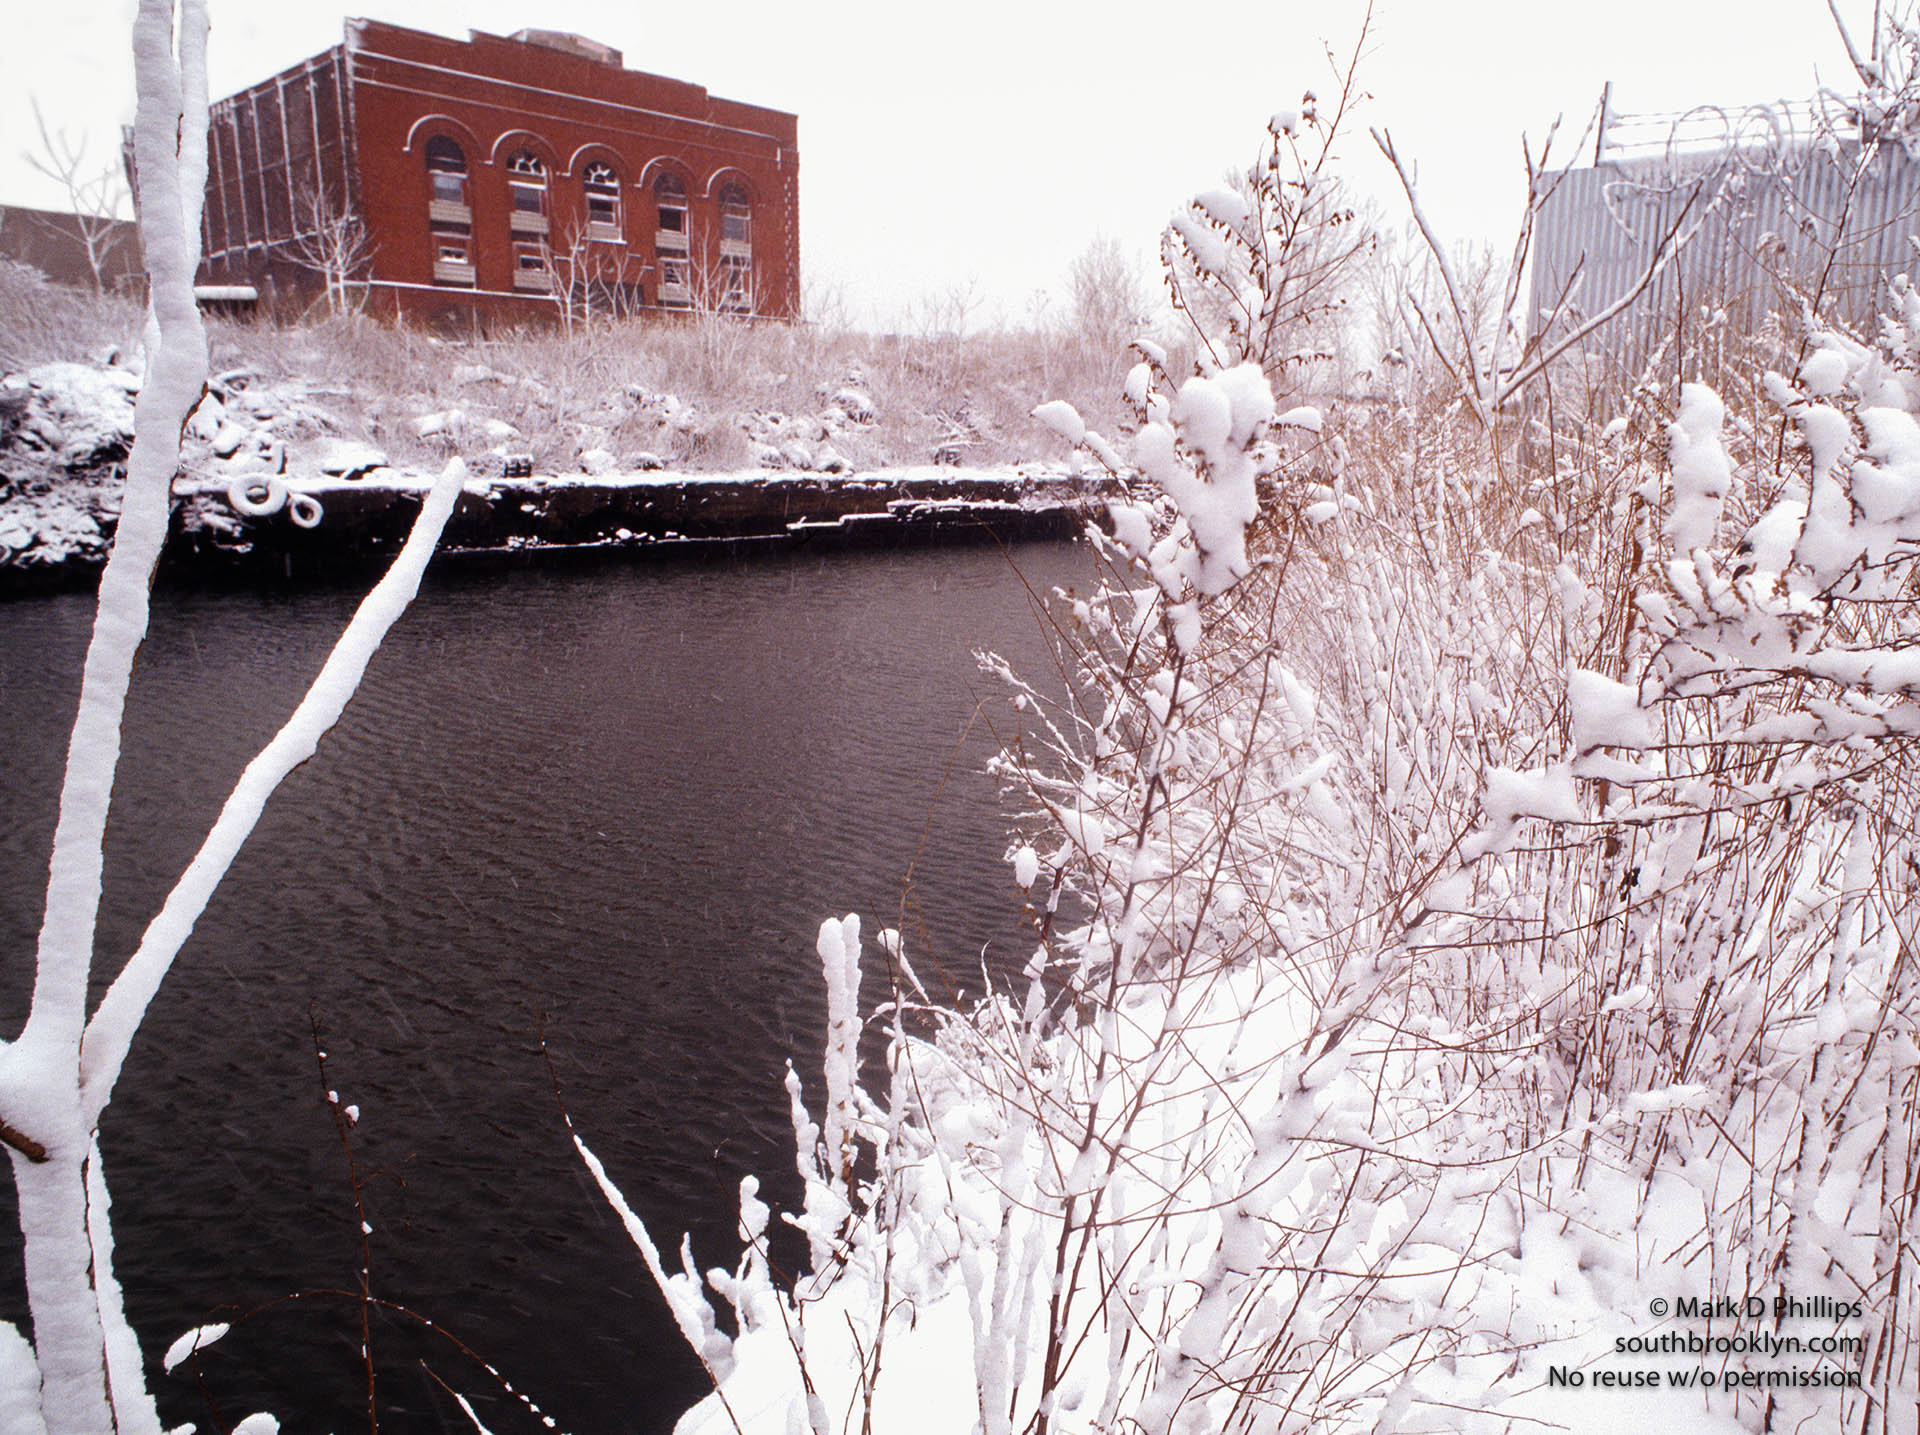 Dynamo Building over the Gowanus Canal in Brooklyn, NY during snowstorm